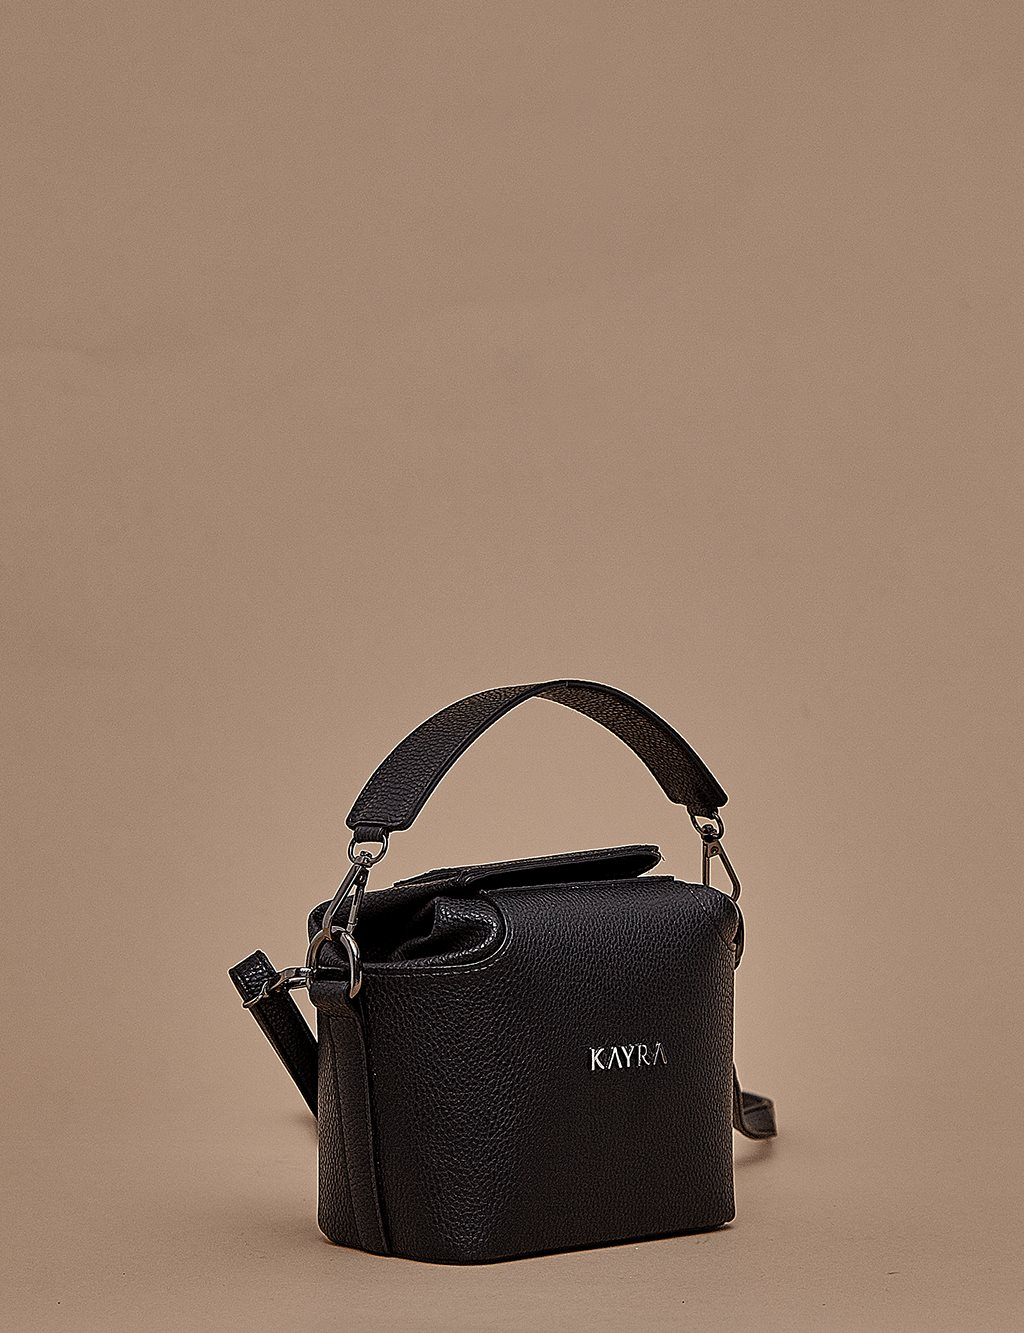 Mini Hand Bag A9 CNT23 Black